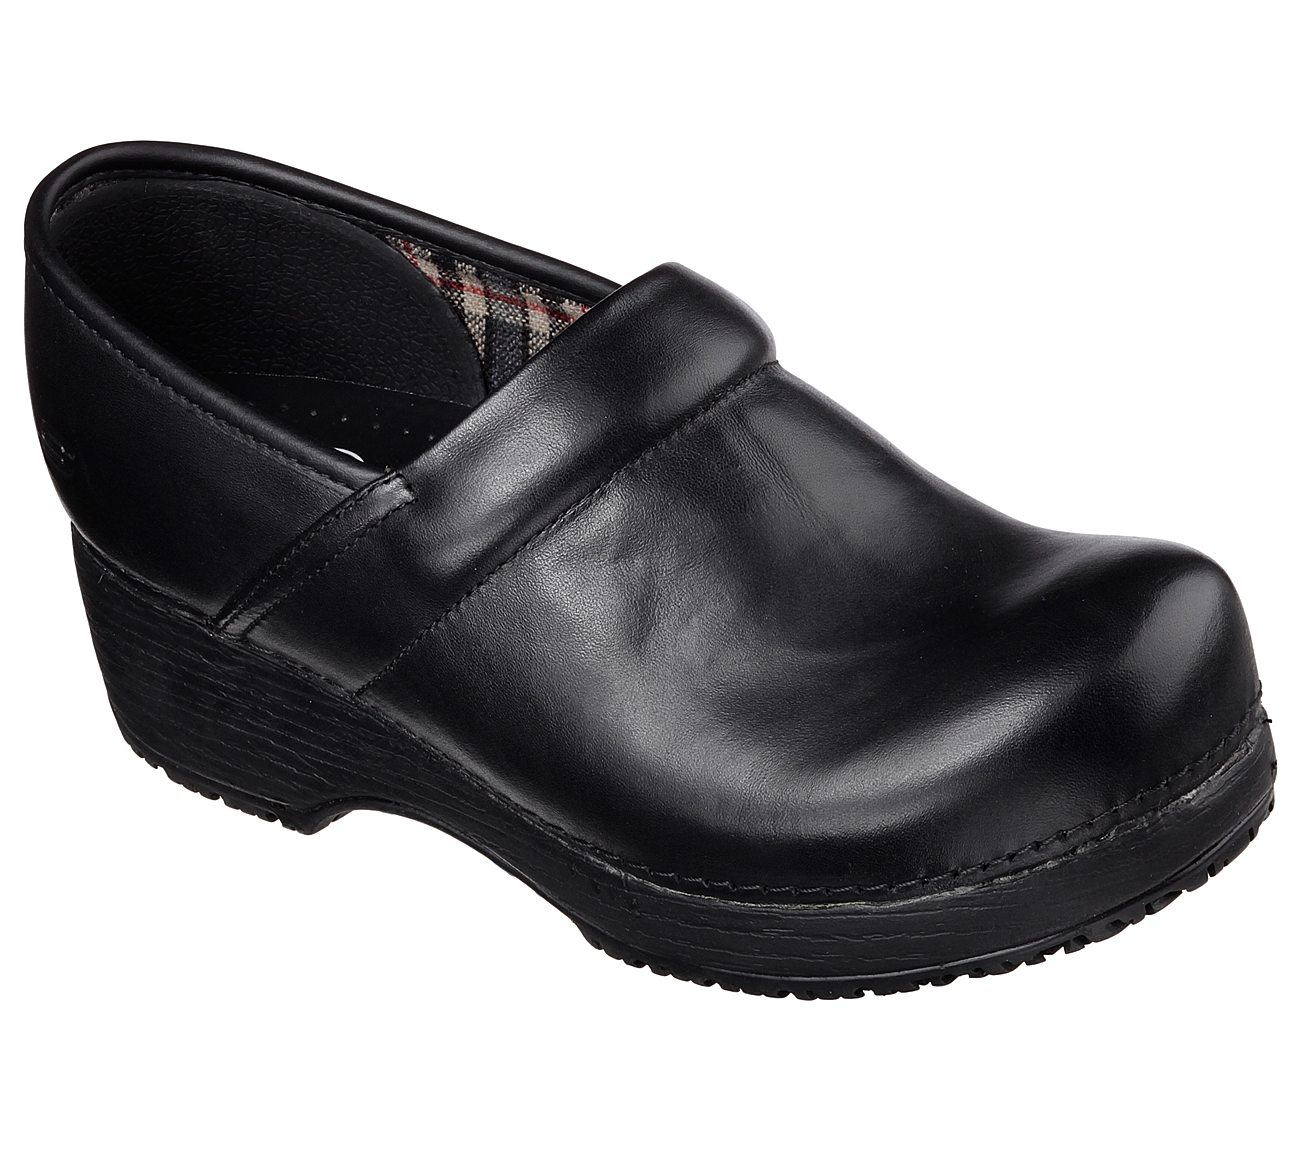 32d8527889a9 Buy SKECHERS Work  Tone-ups Clog Slip Resistant Work Shoes only  85.00